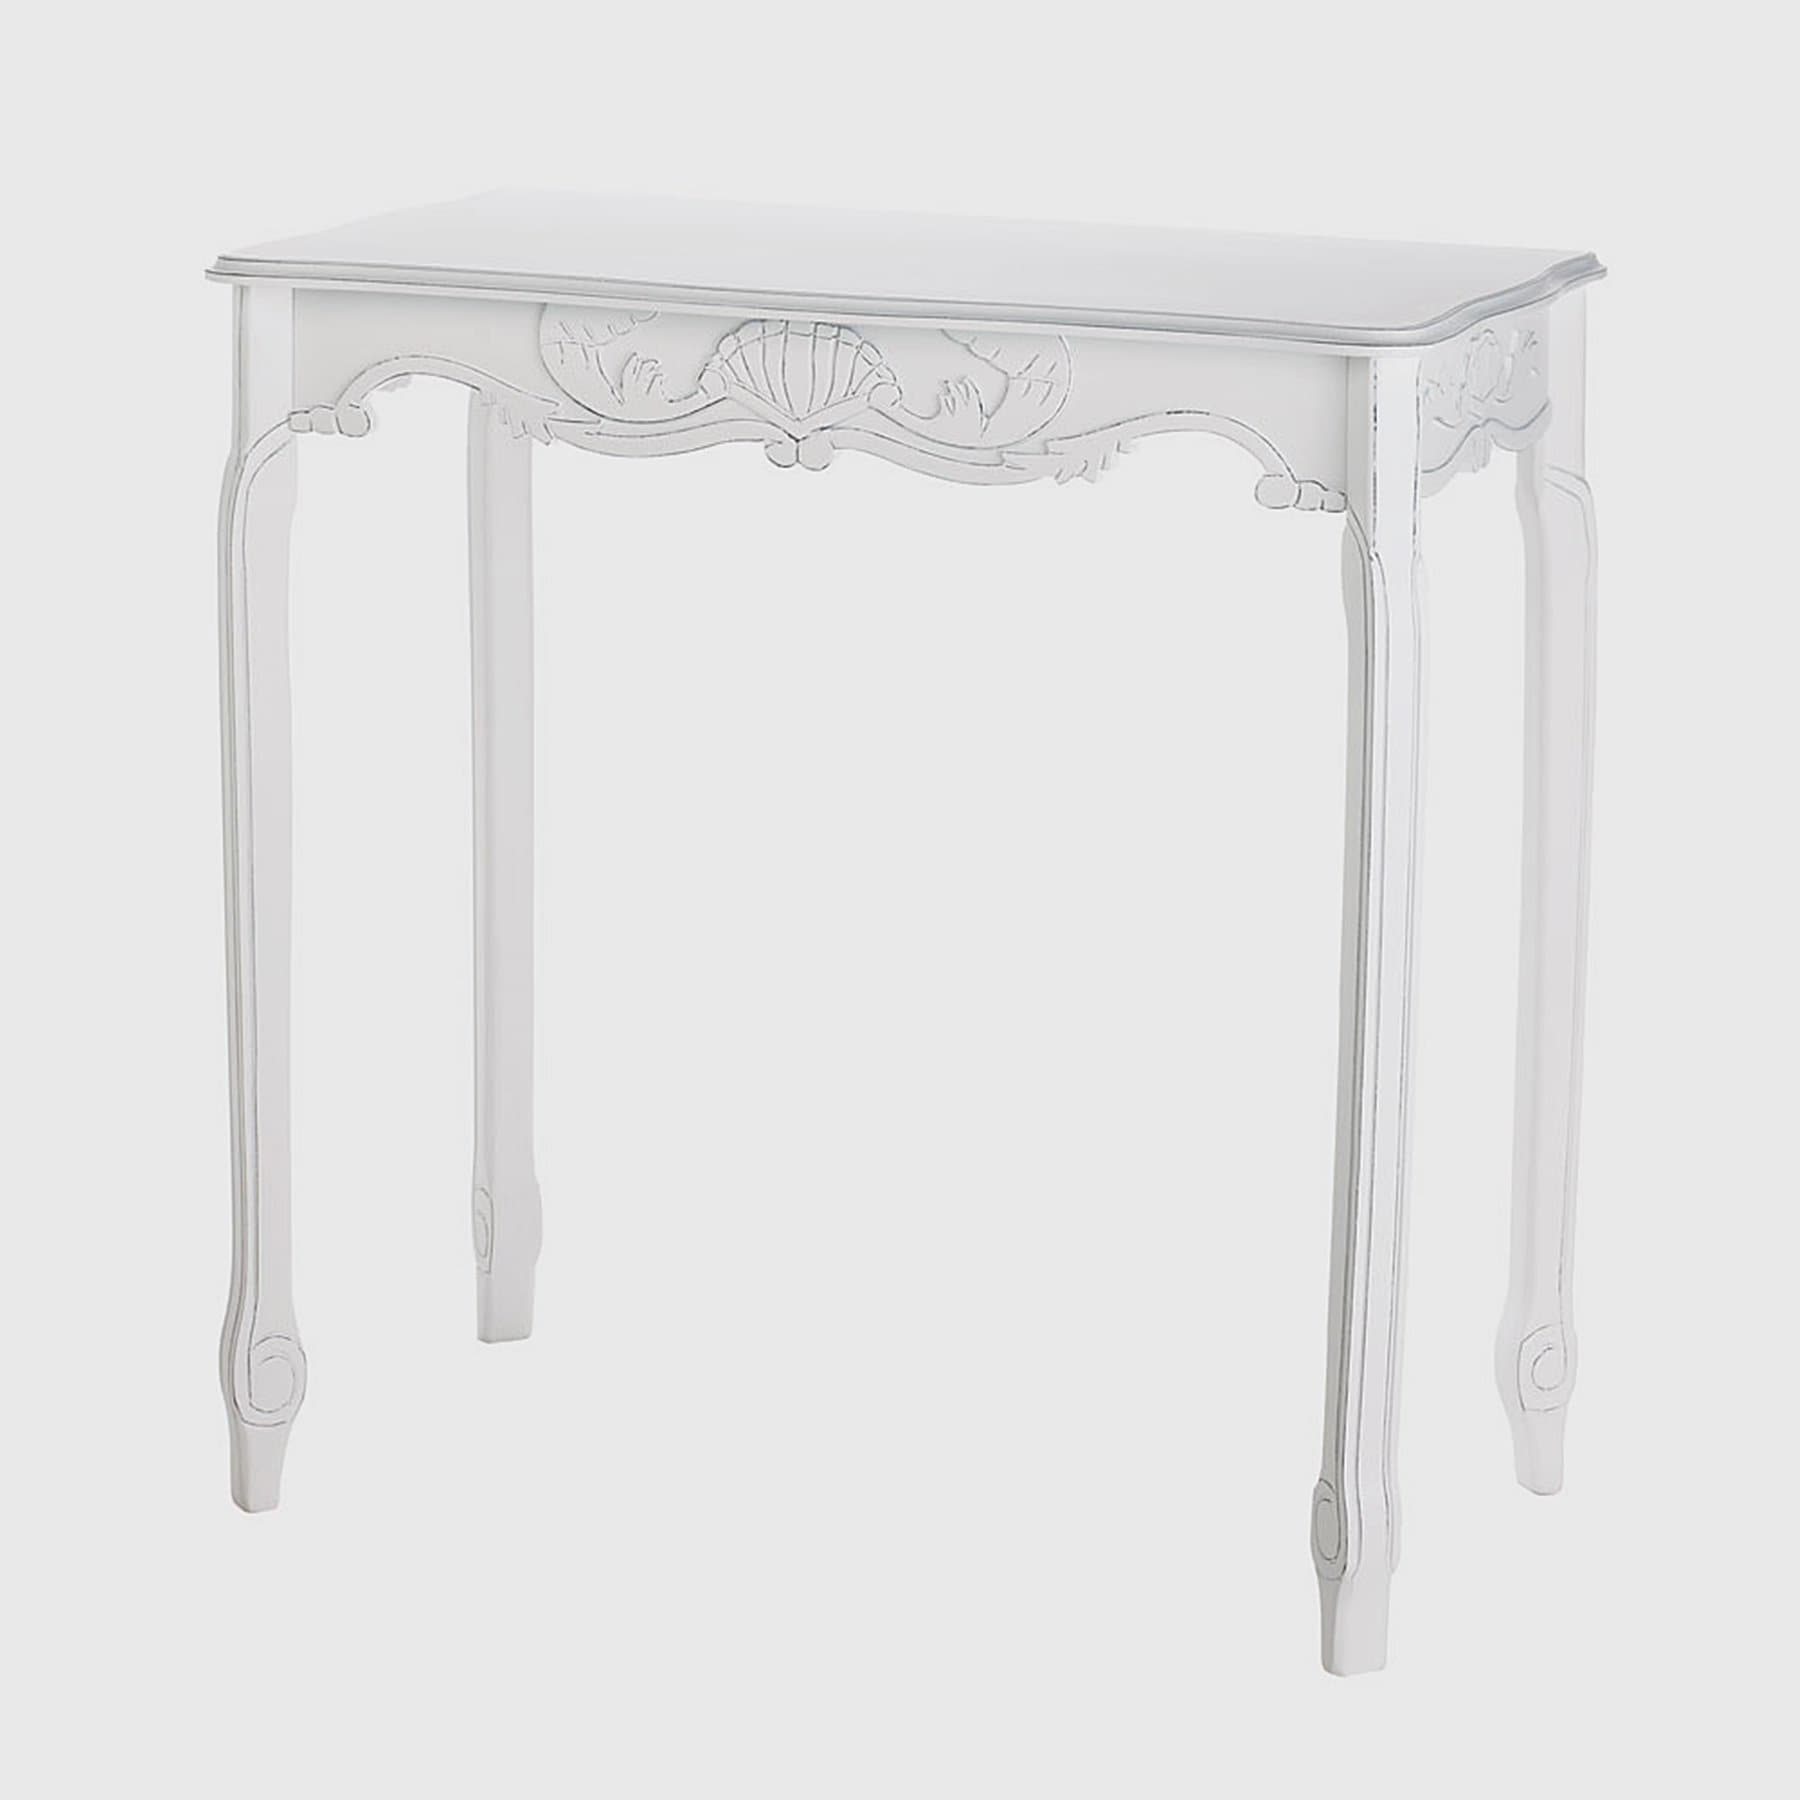 elizabeth antique white accent table free shipping today indoor plant dining cover set meyda tiffany pendant lights glass bedside drawers small round wine end cantilever umbrella